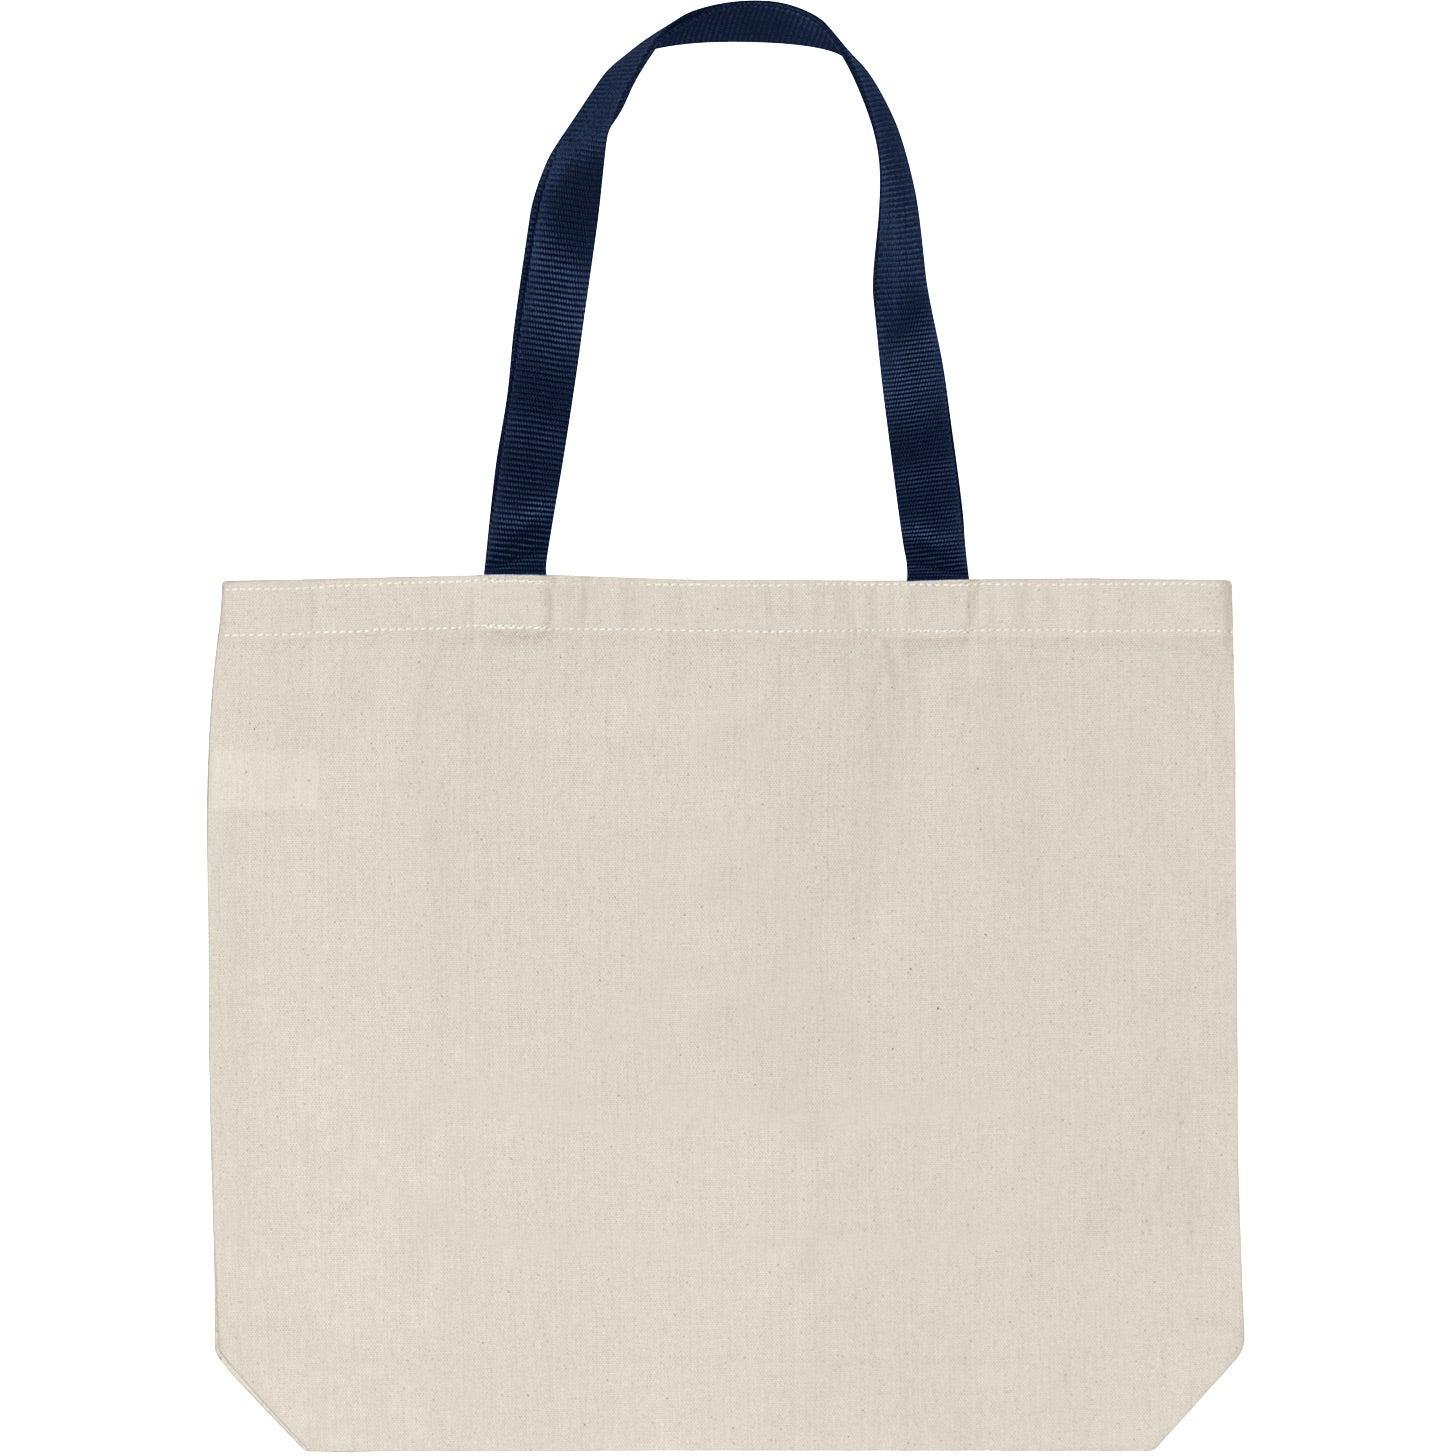 Promotional Shoulder Tote Bag with Custom Logo for $3.03 Ea.